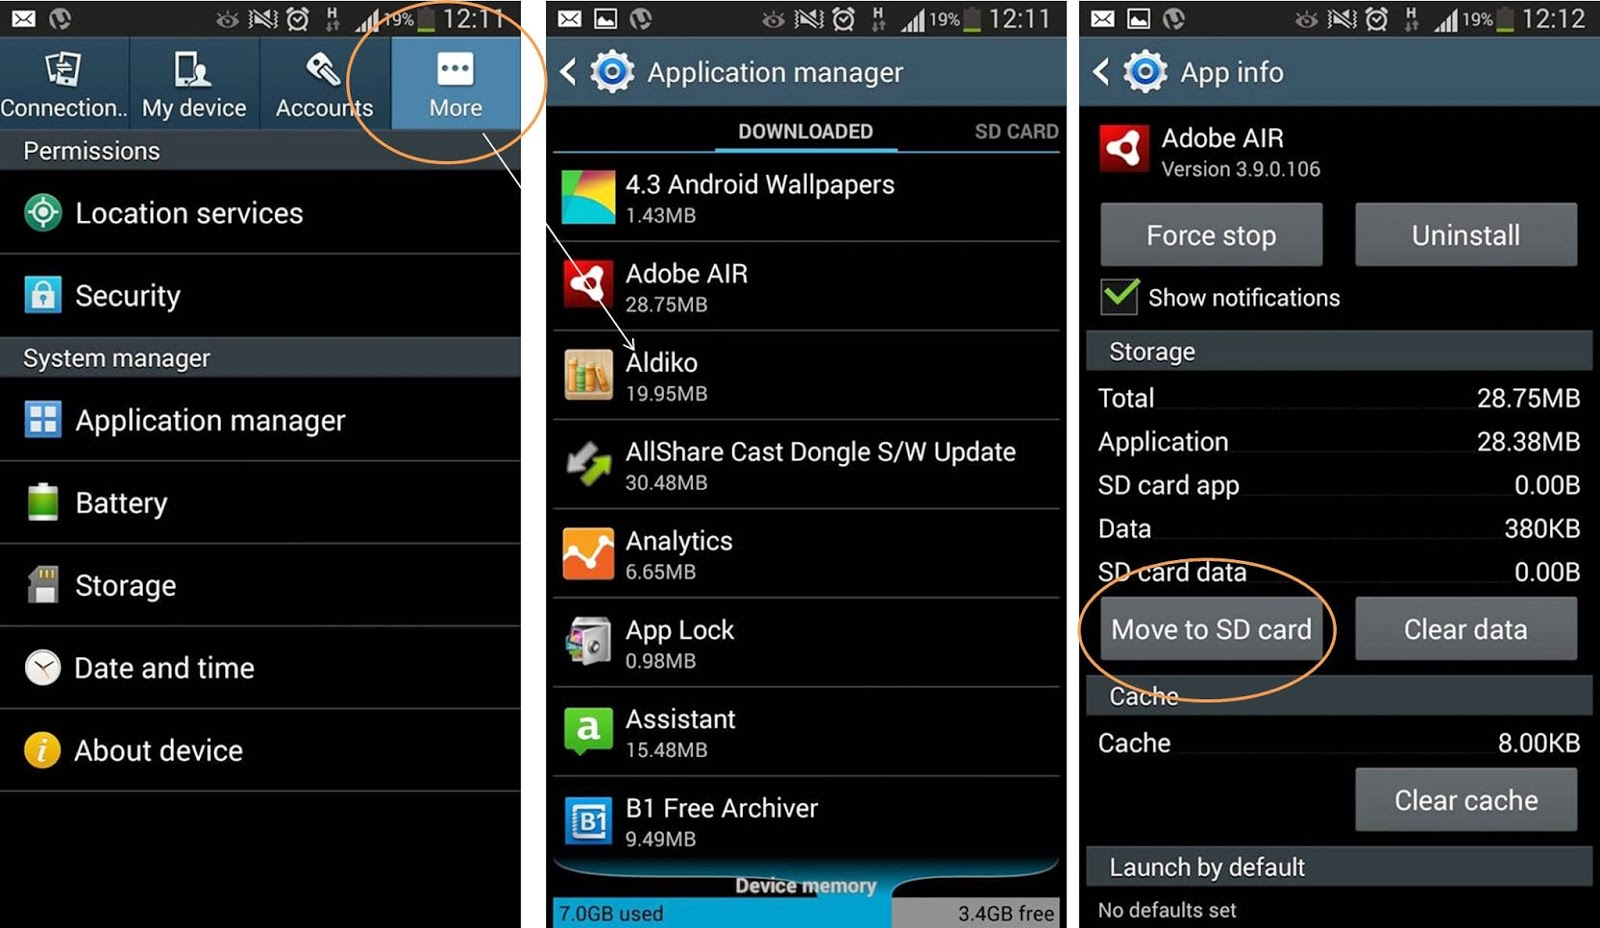 How to Use Move to SD card feature on NOTE 2 Android 4.3